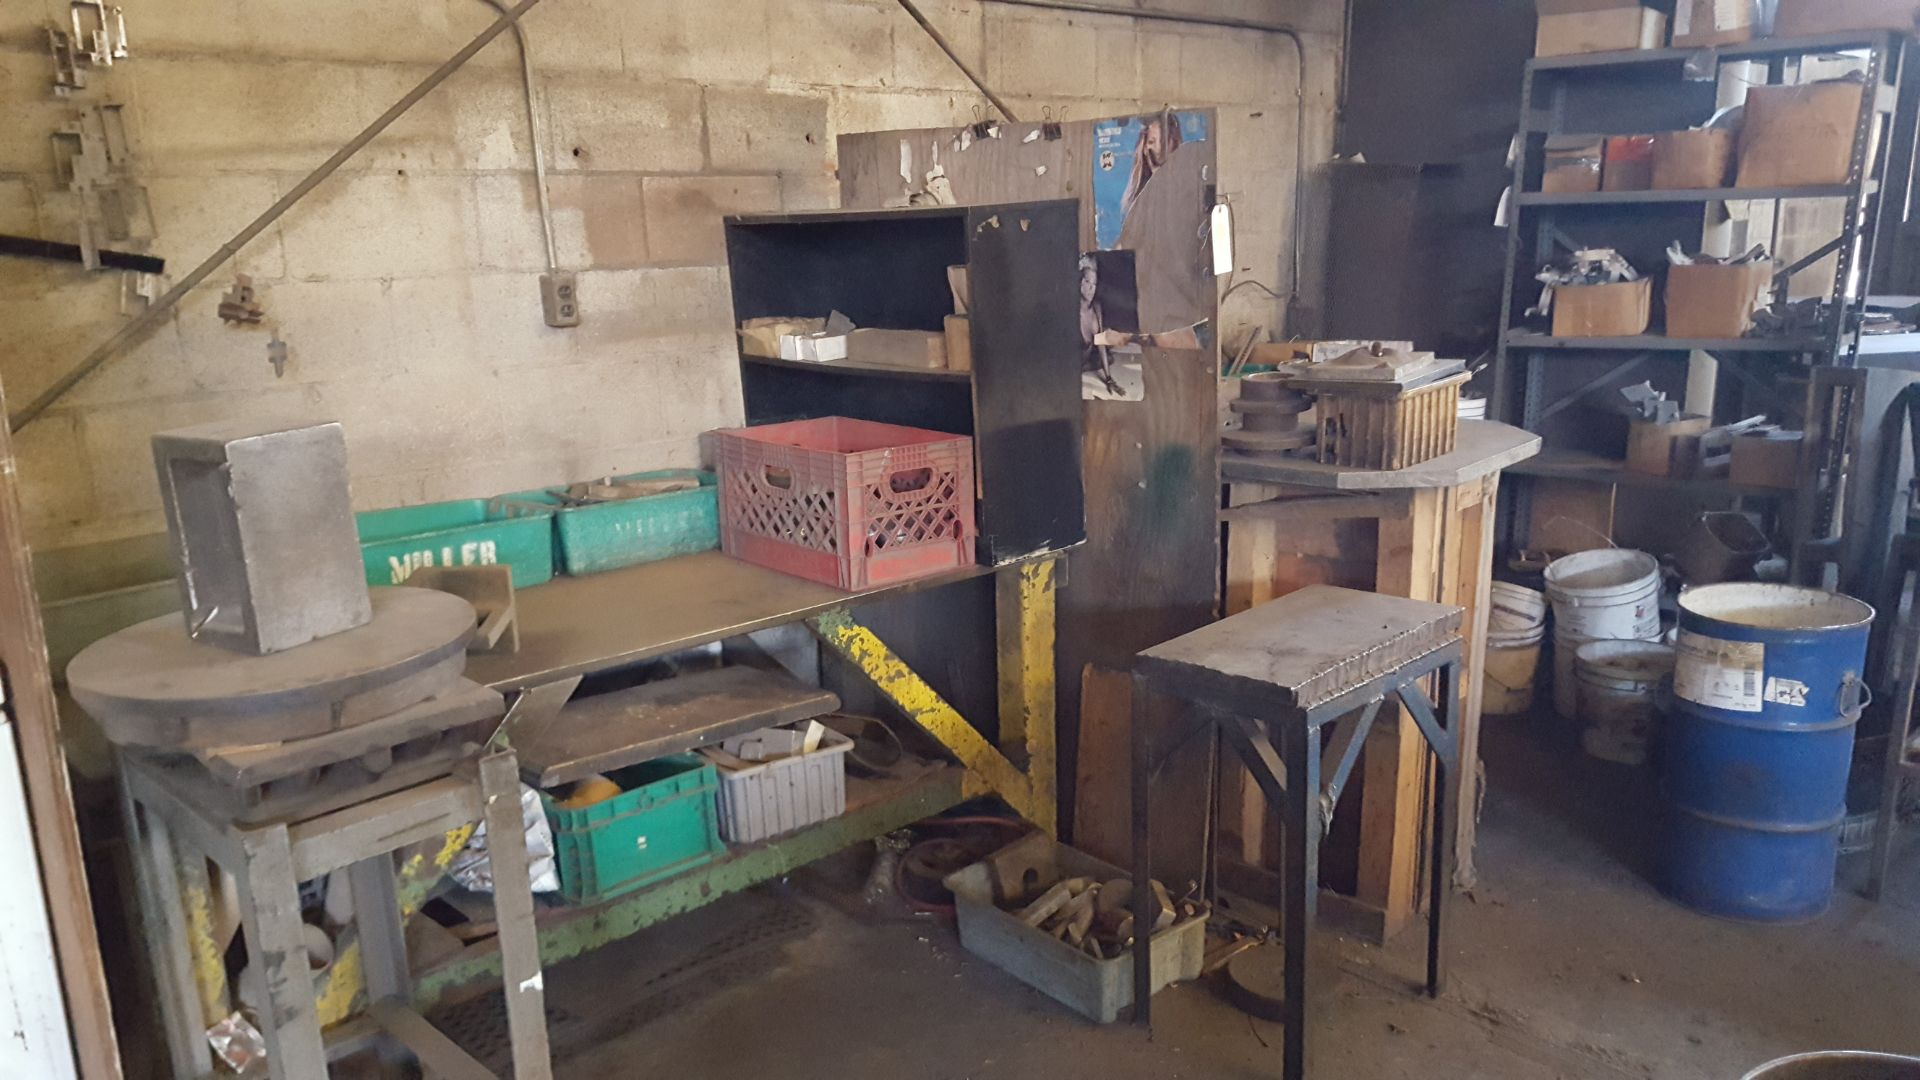 Lot 54 - SHELF AND TABLES WITH PARTS